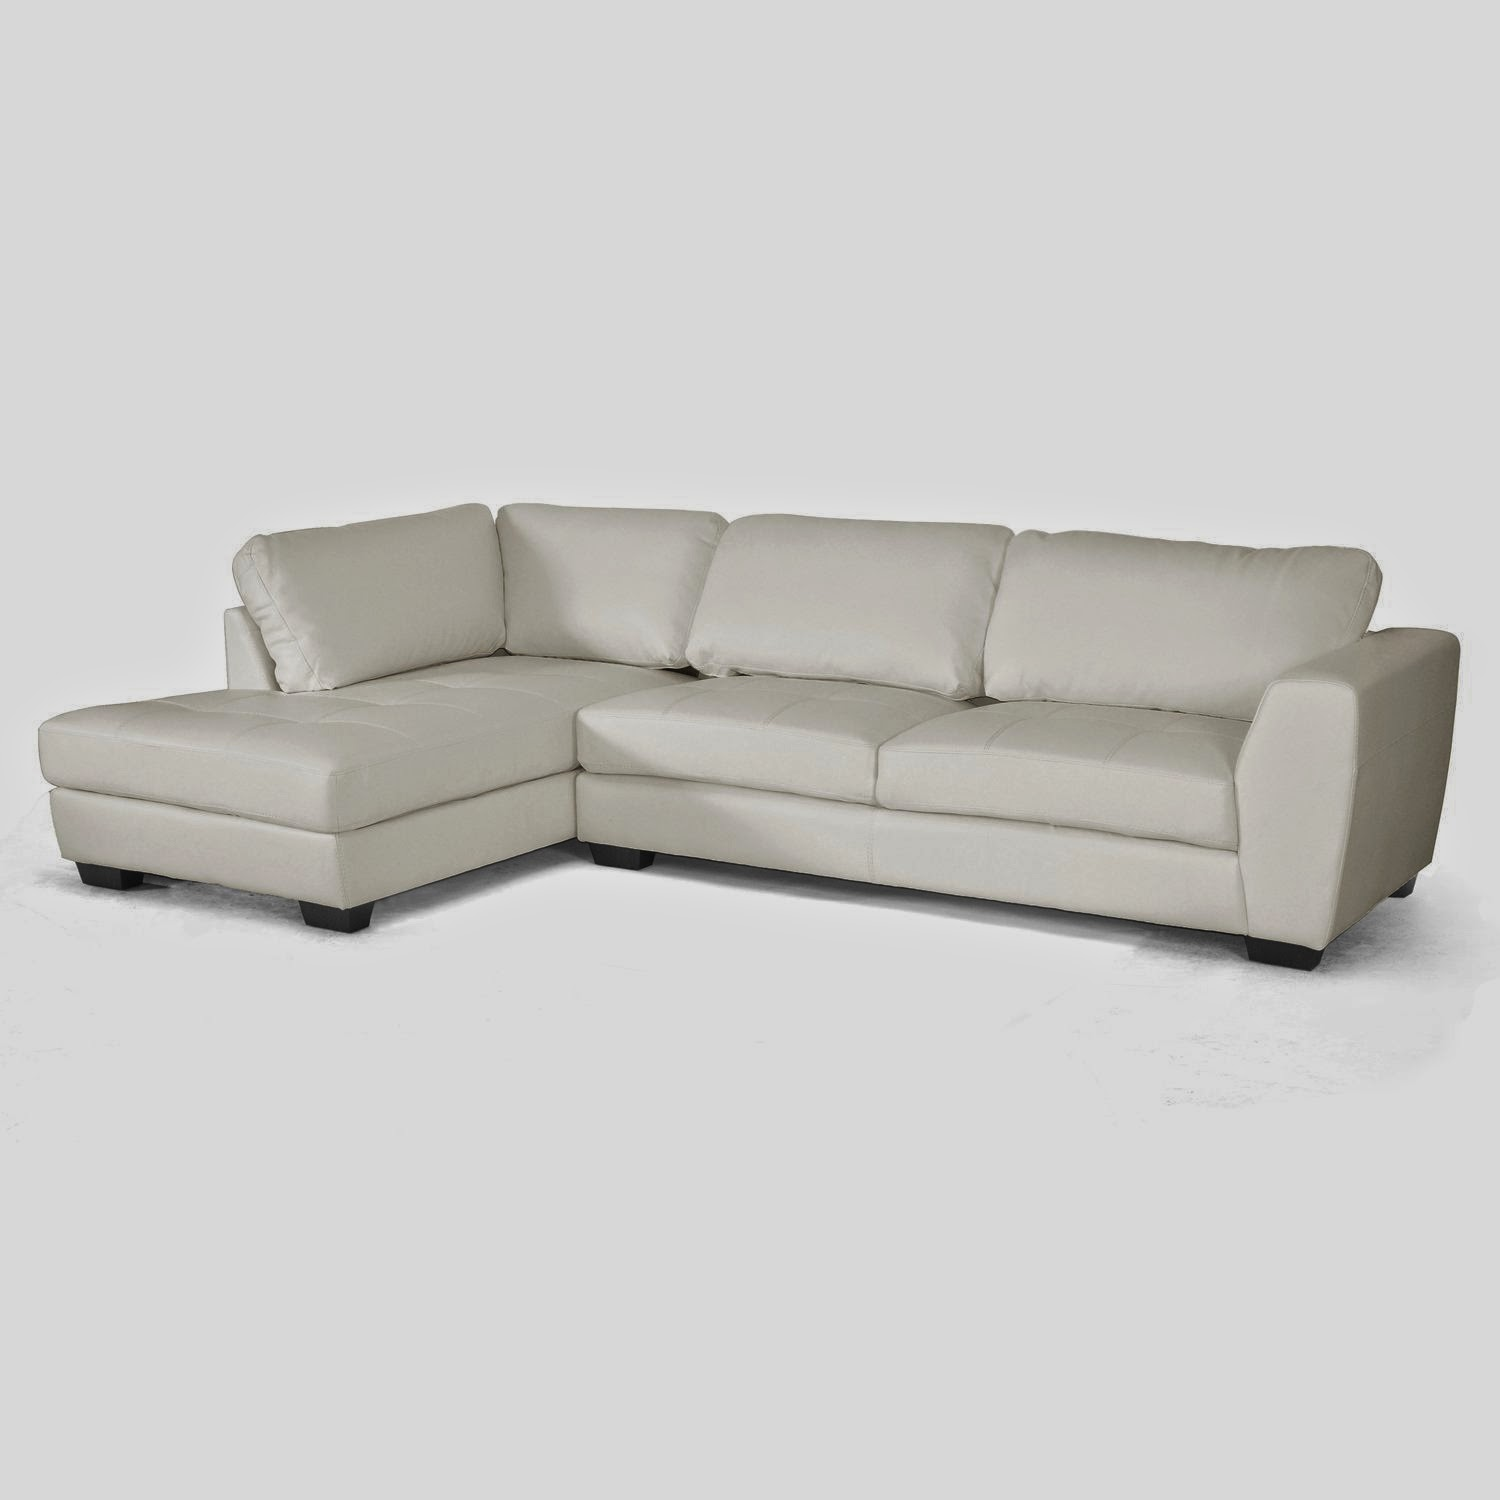 Baxton Studio Dobson Leather Modern Sectional Sofa Recliner Cheapest White Couch